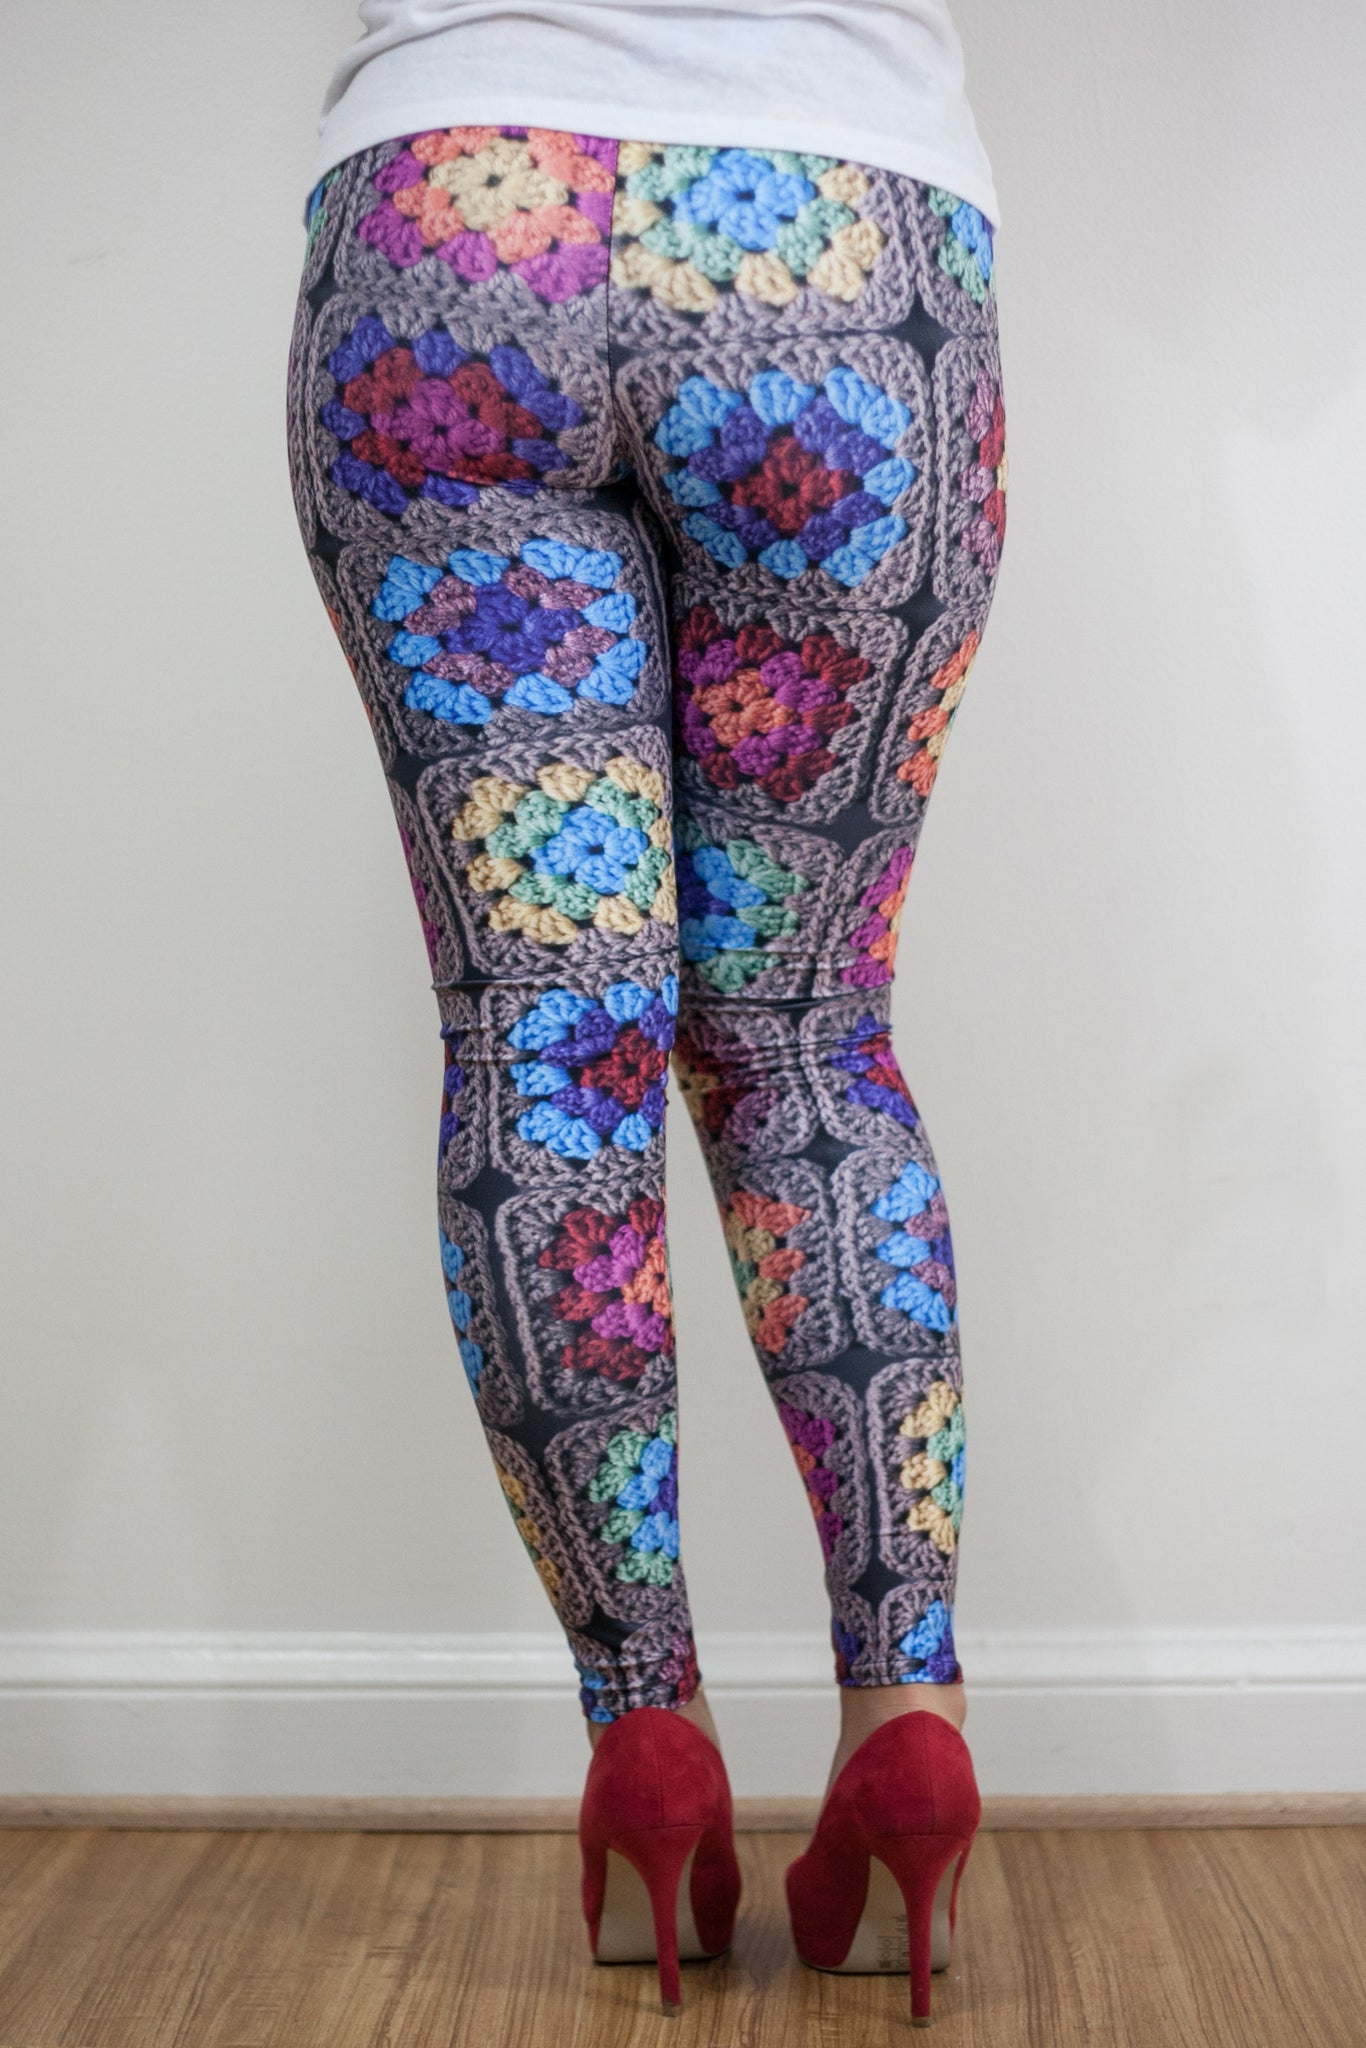 'Harvest Kaleidoscope' Crochet Print Granny Square Leggings